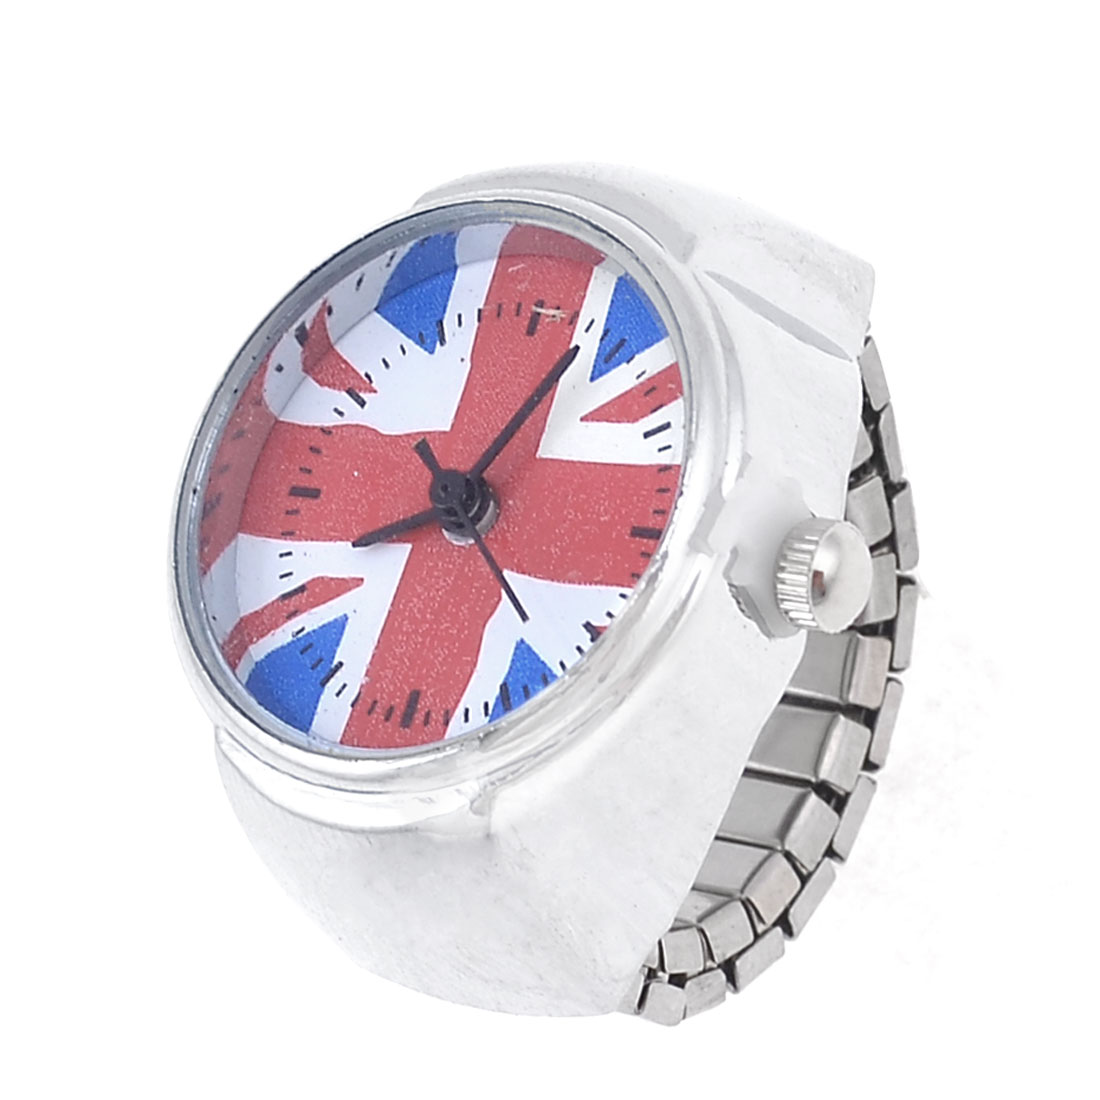 Lady Stretch Band Round Case UK Flag Finger Ring Watch UK J 1/2 15.7mm Inside Dia